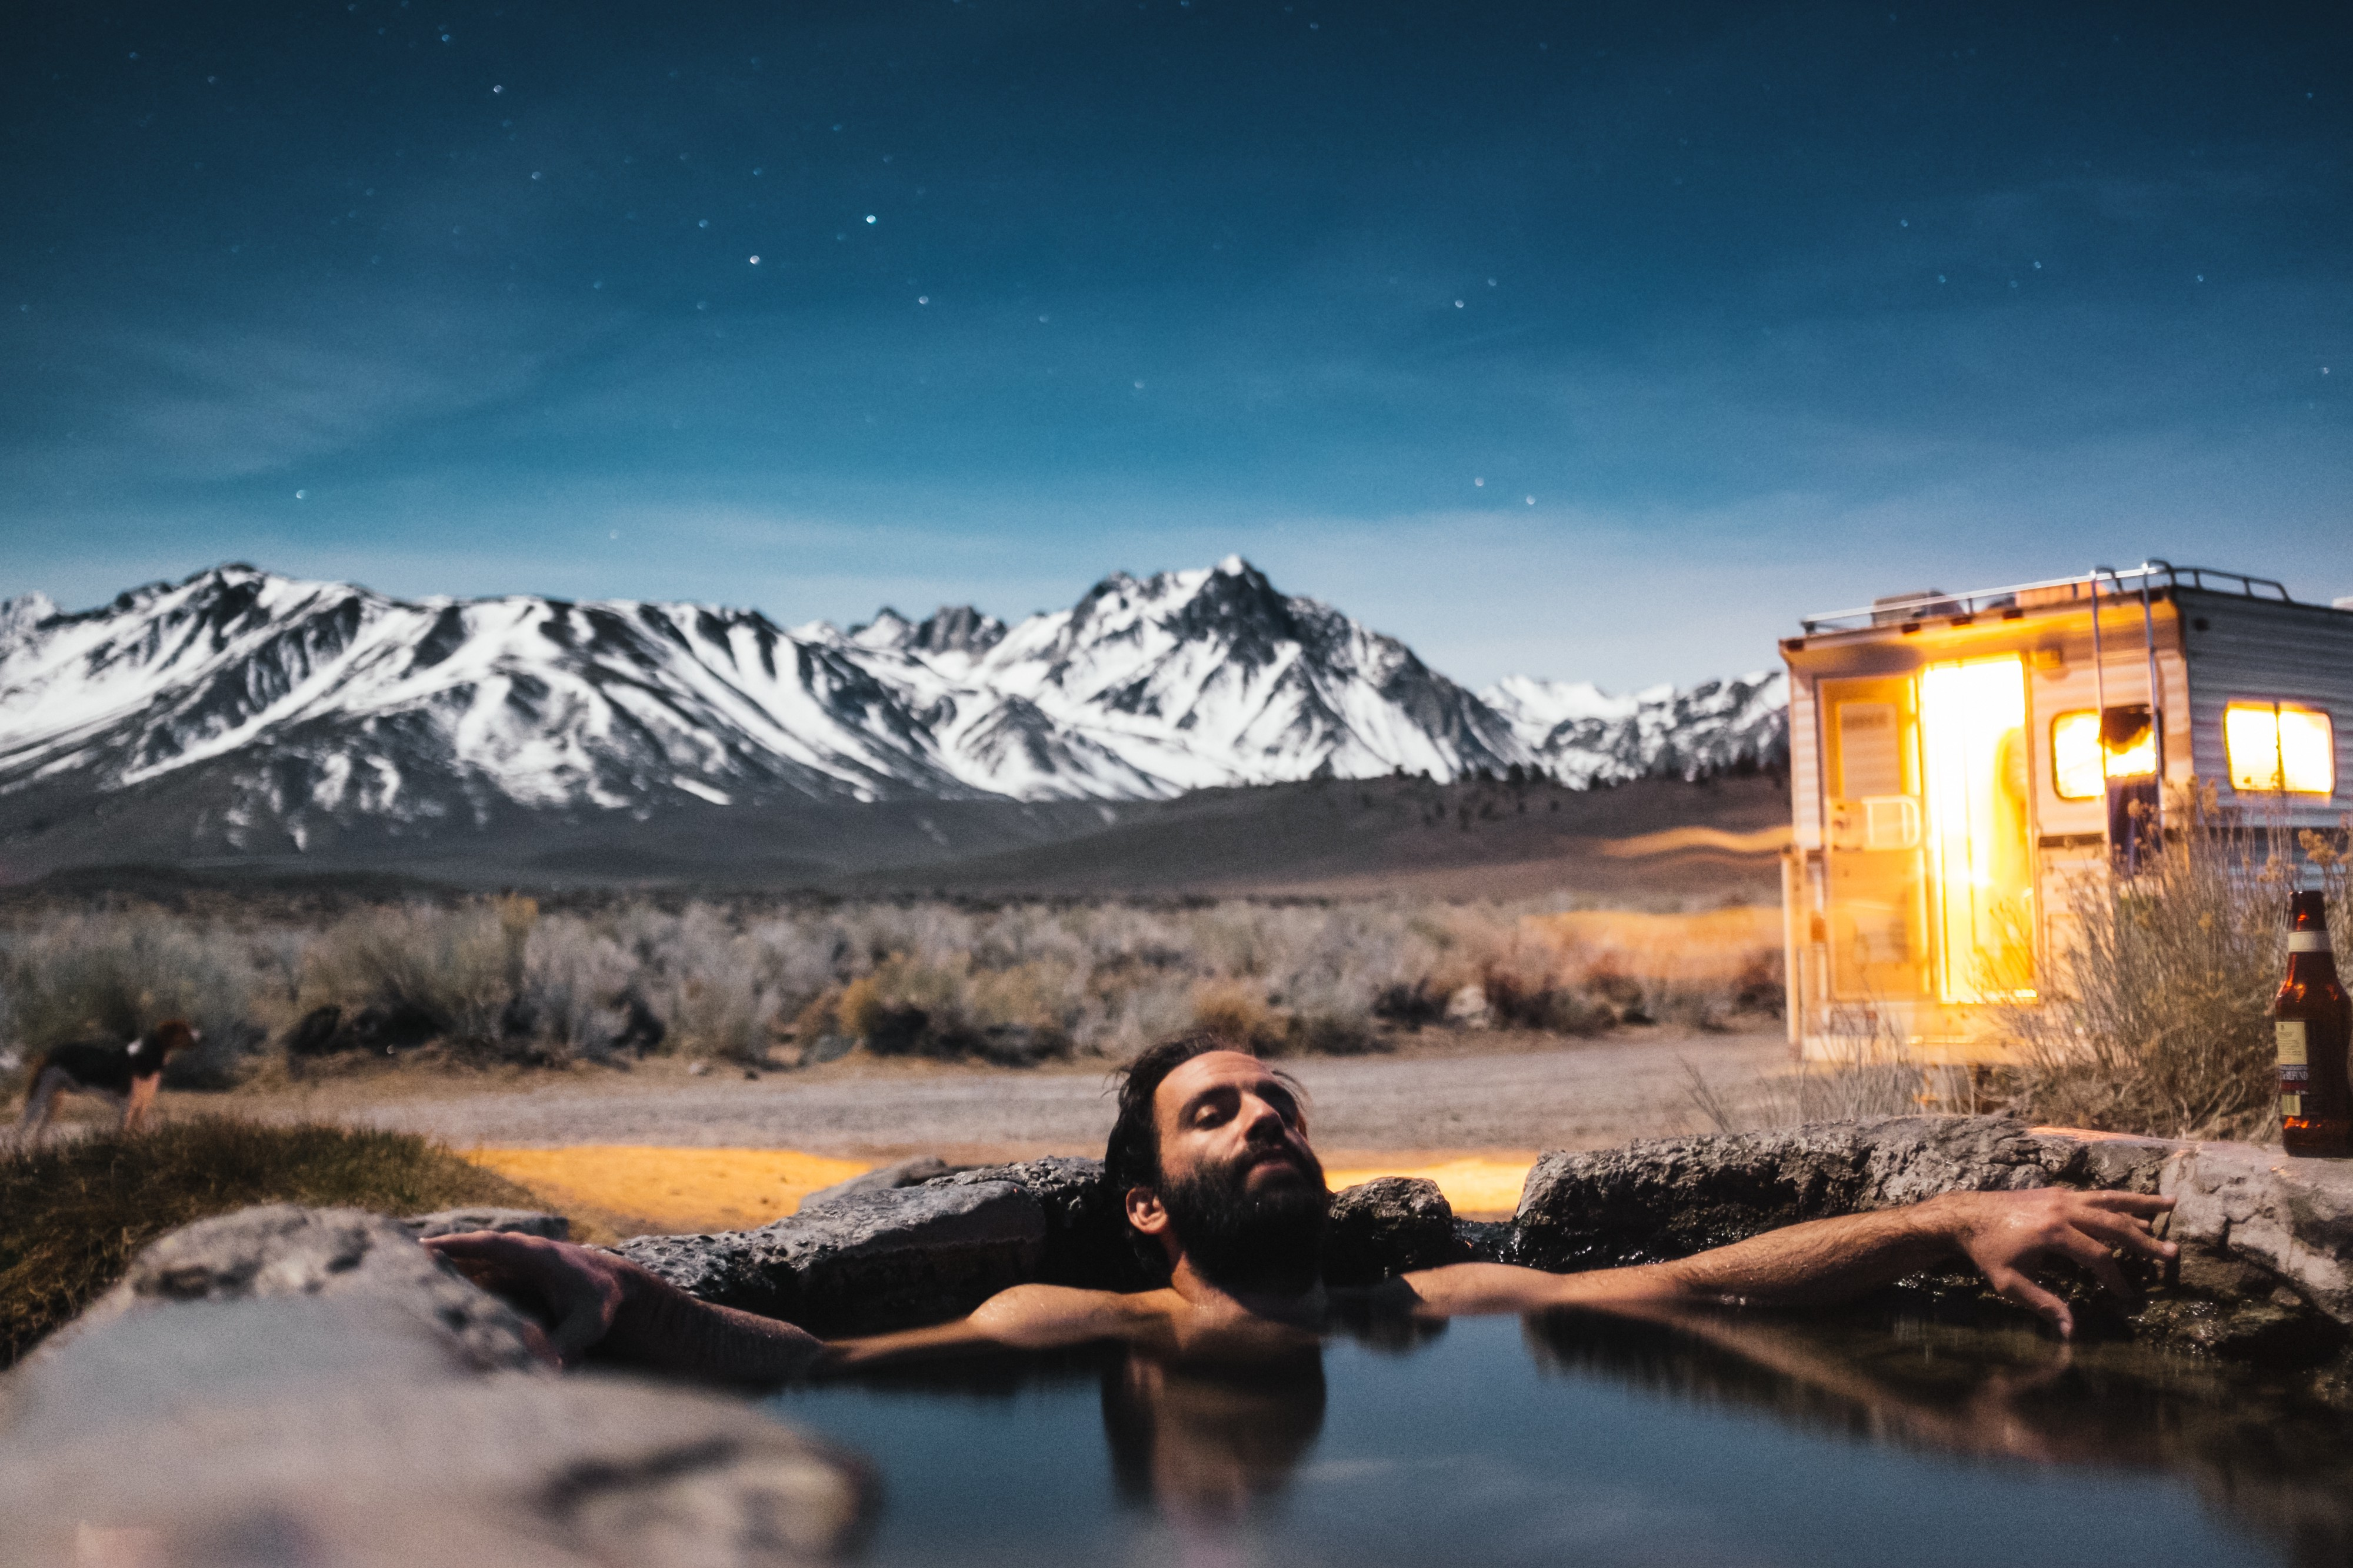 Man in hot tub at night with a beautiful view.